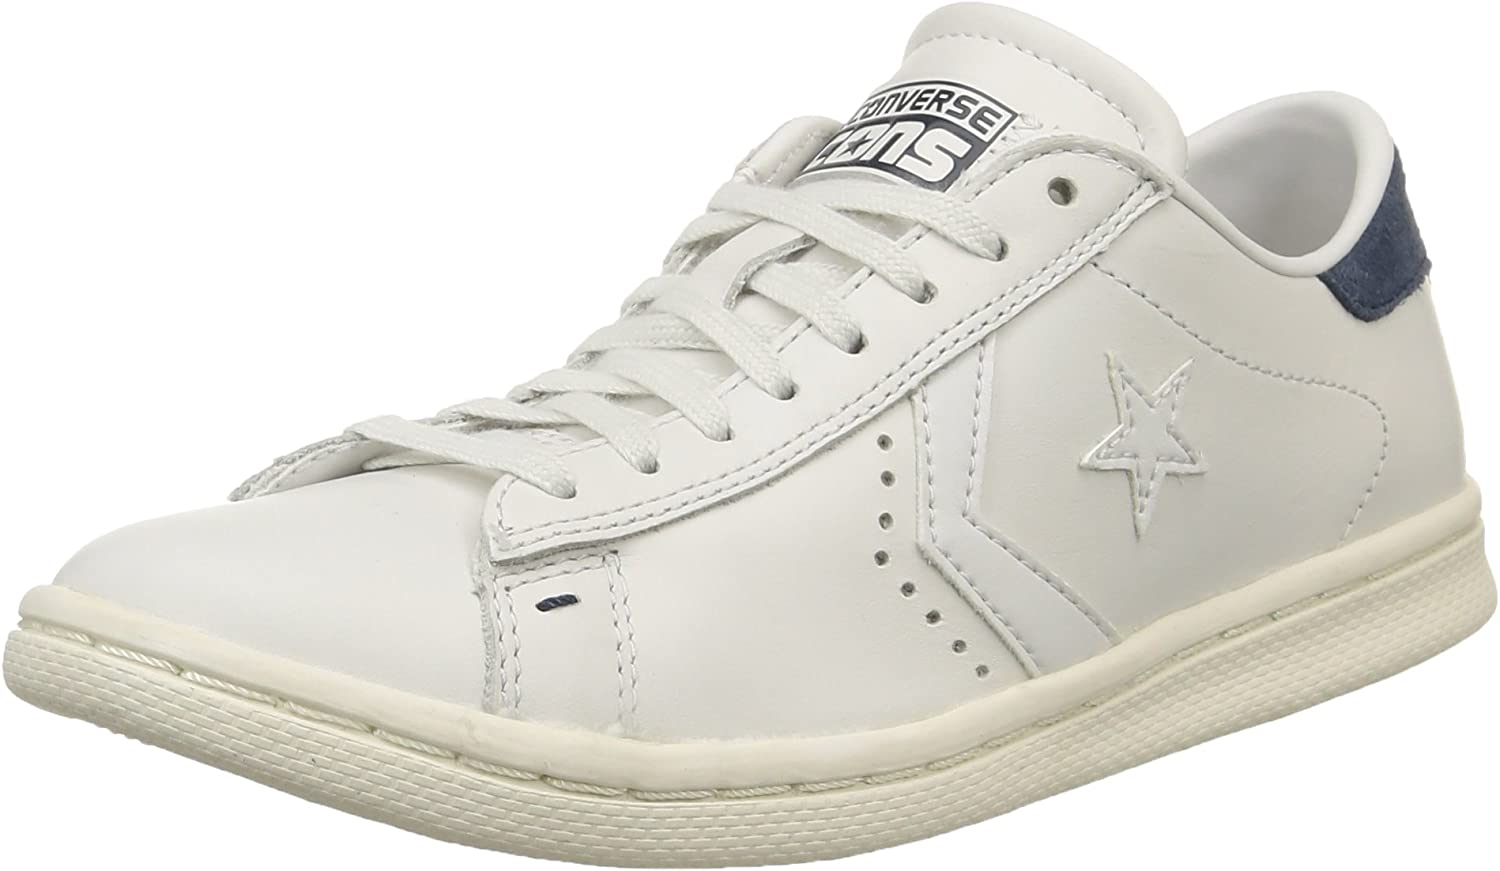 Converse Men's Pro Lp Ox Leather Sneakers